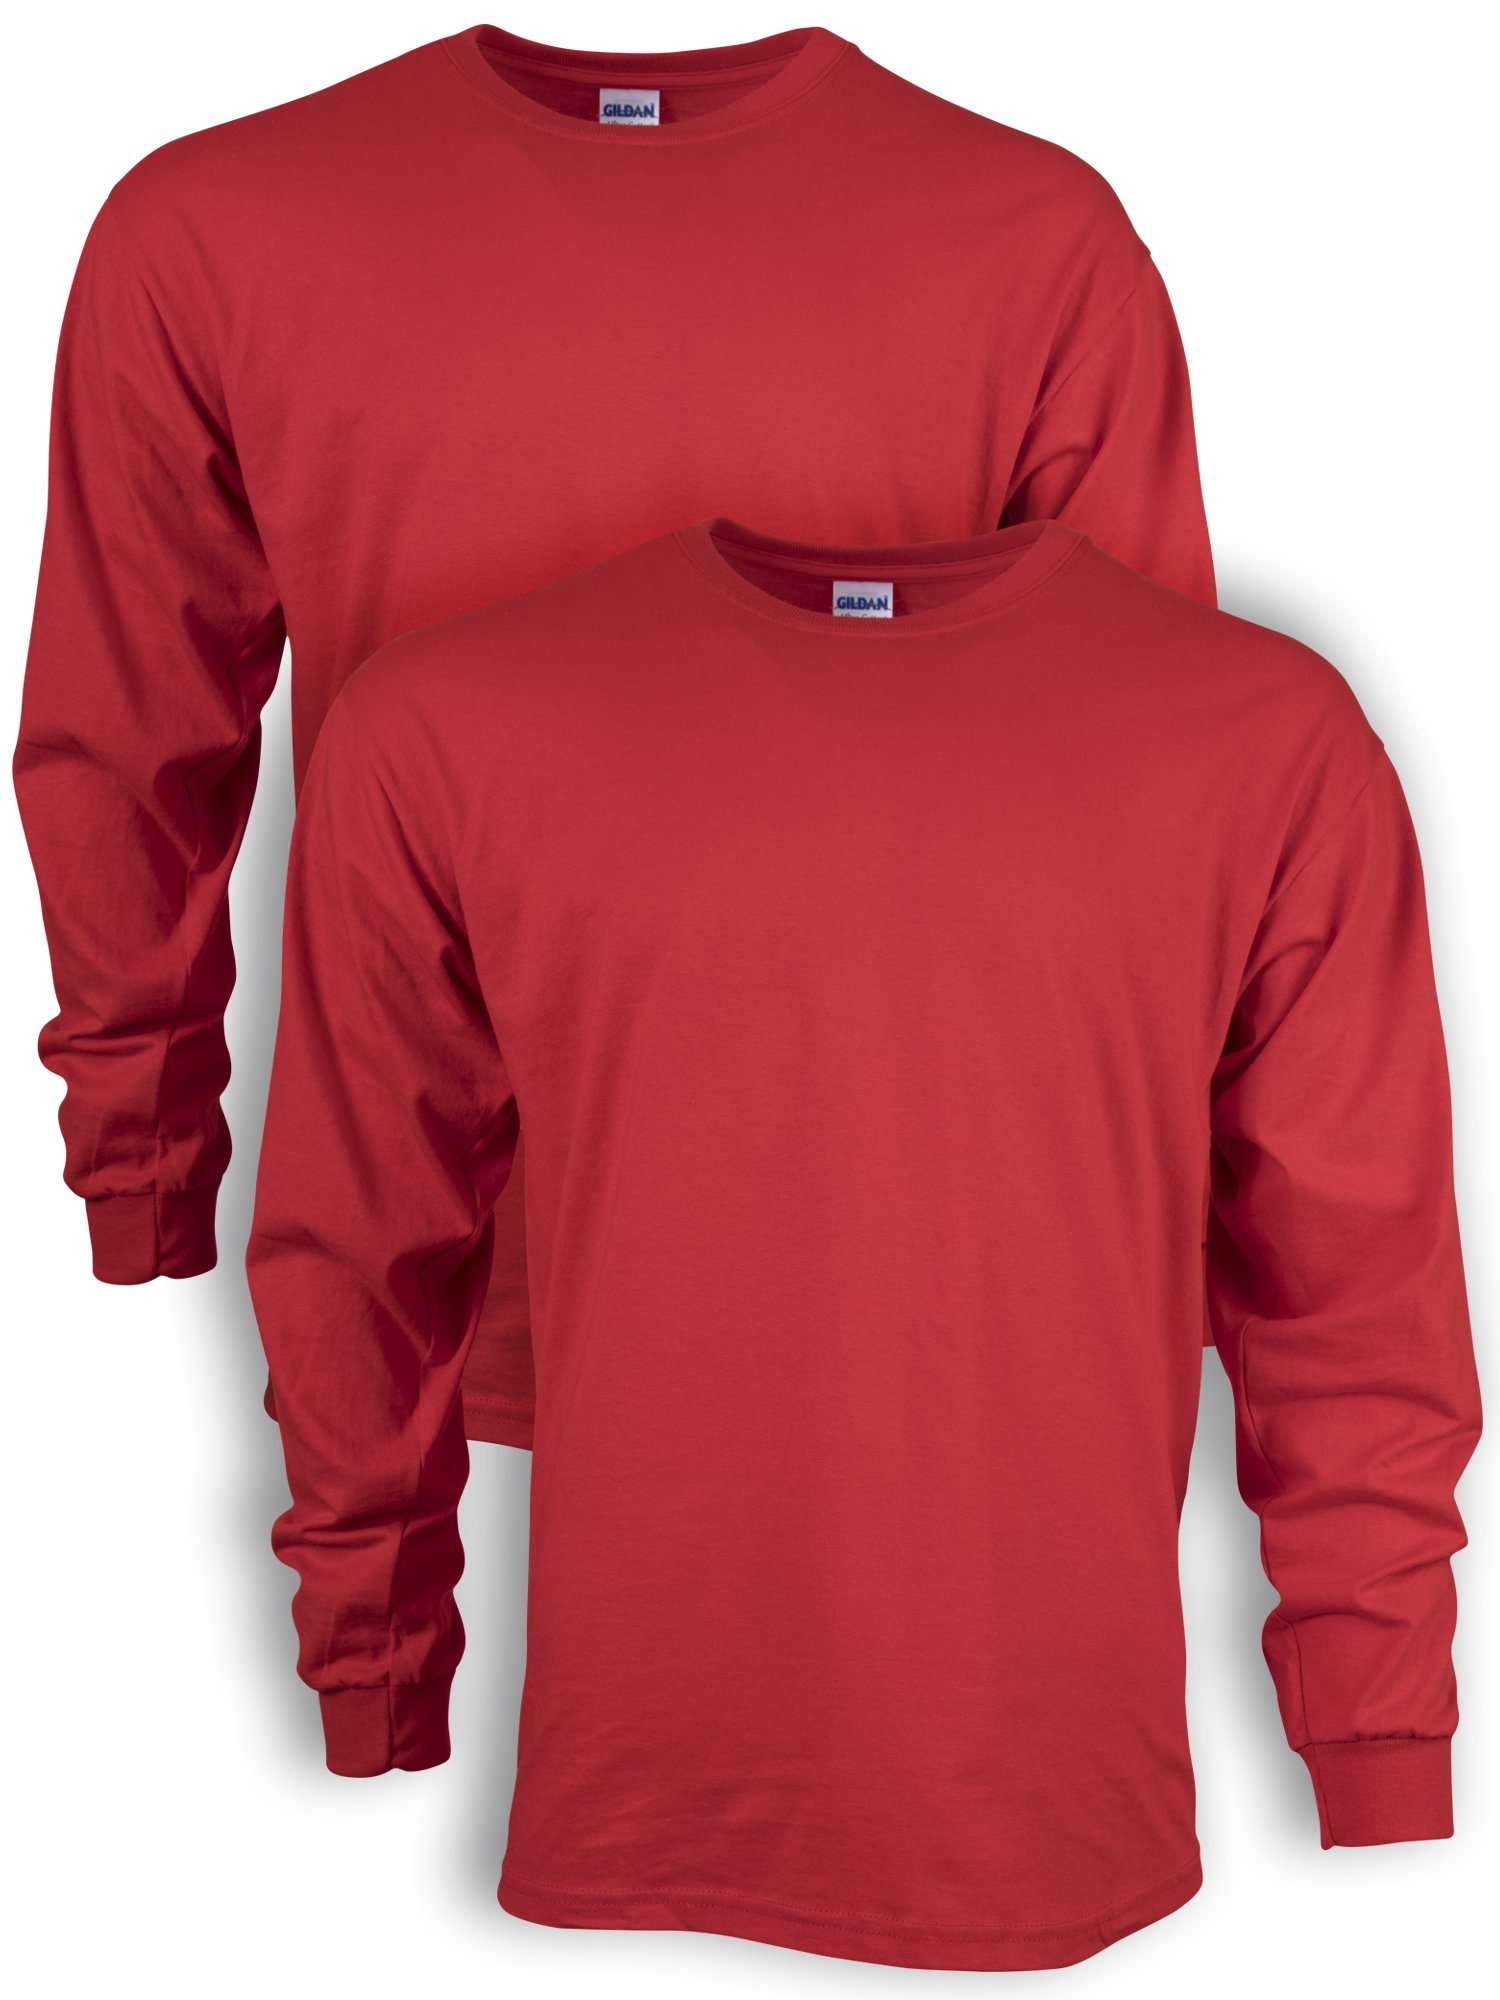 Gildan Men's Ultra Cotton Adult Long Sleeve T-Shirt, 2-Pack, Red, 3X-Large